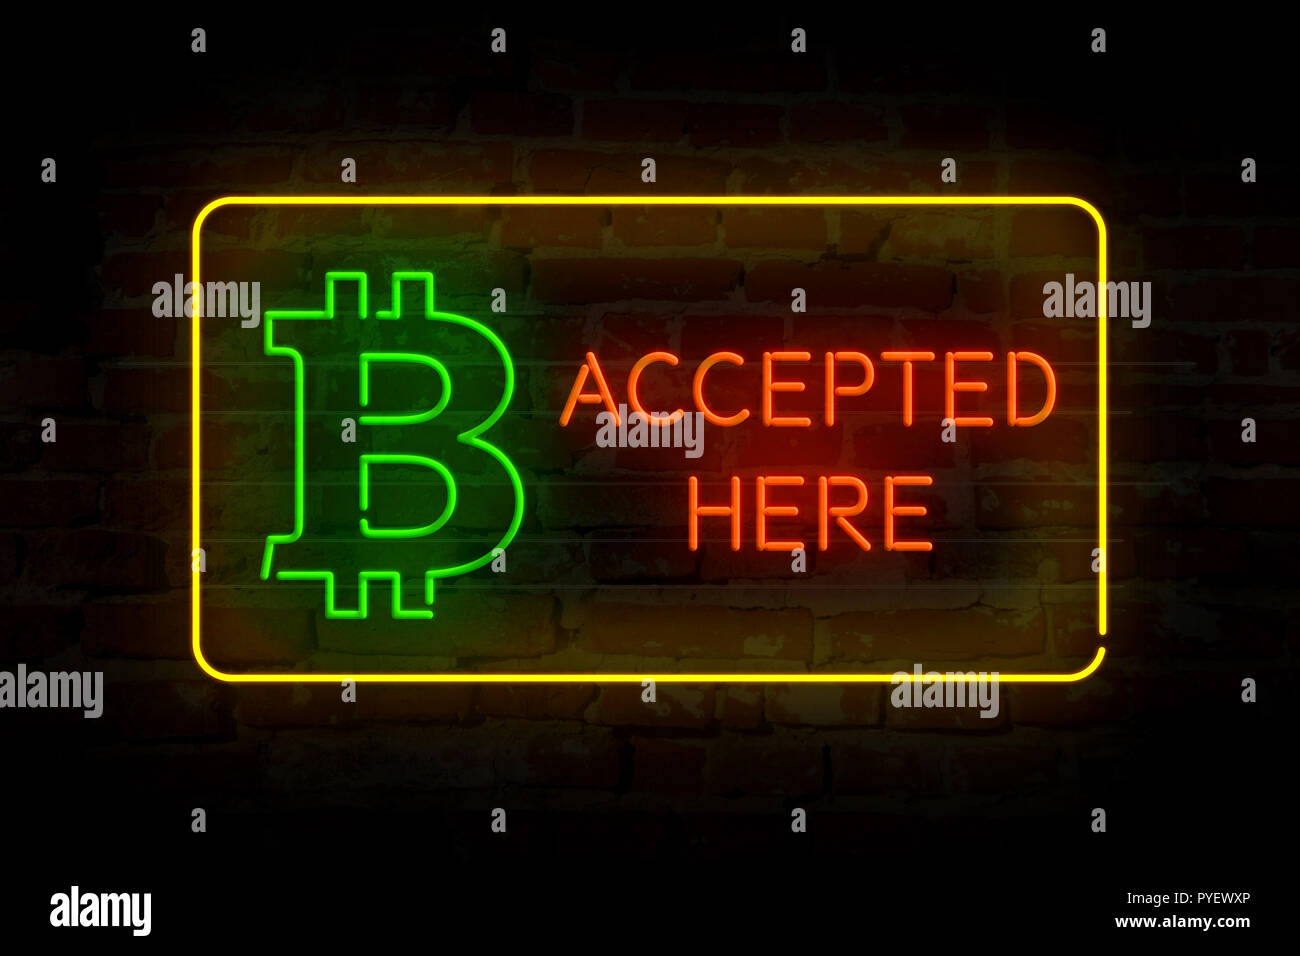 Bitcoin accepted here neon lights on brick wall abstract background